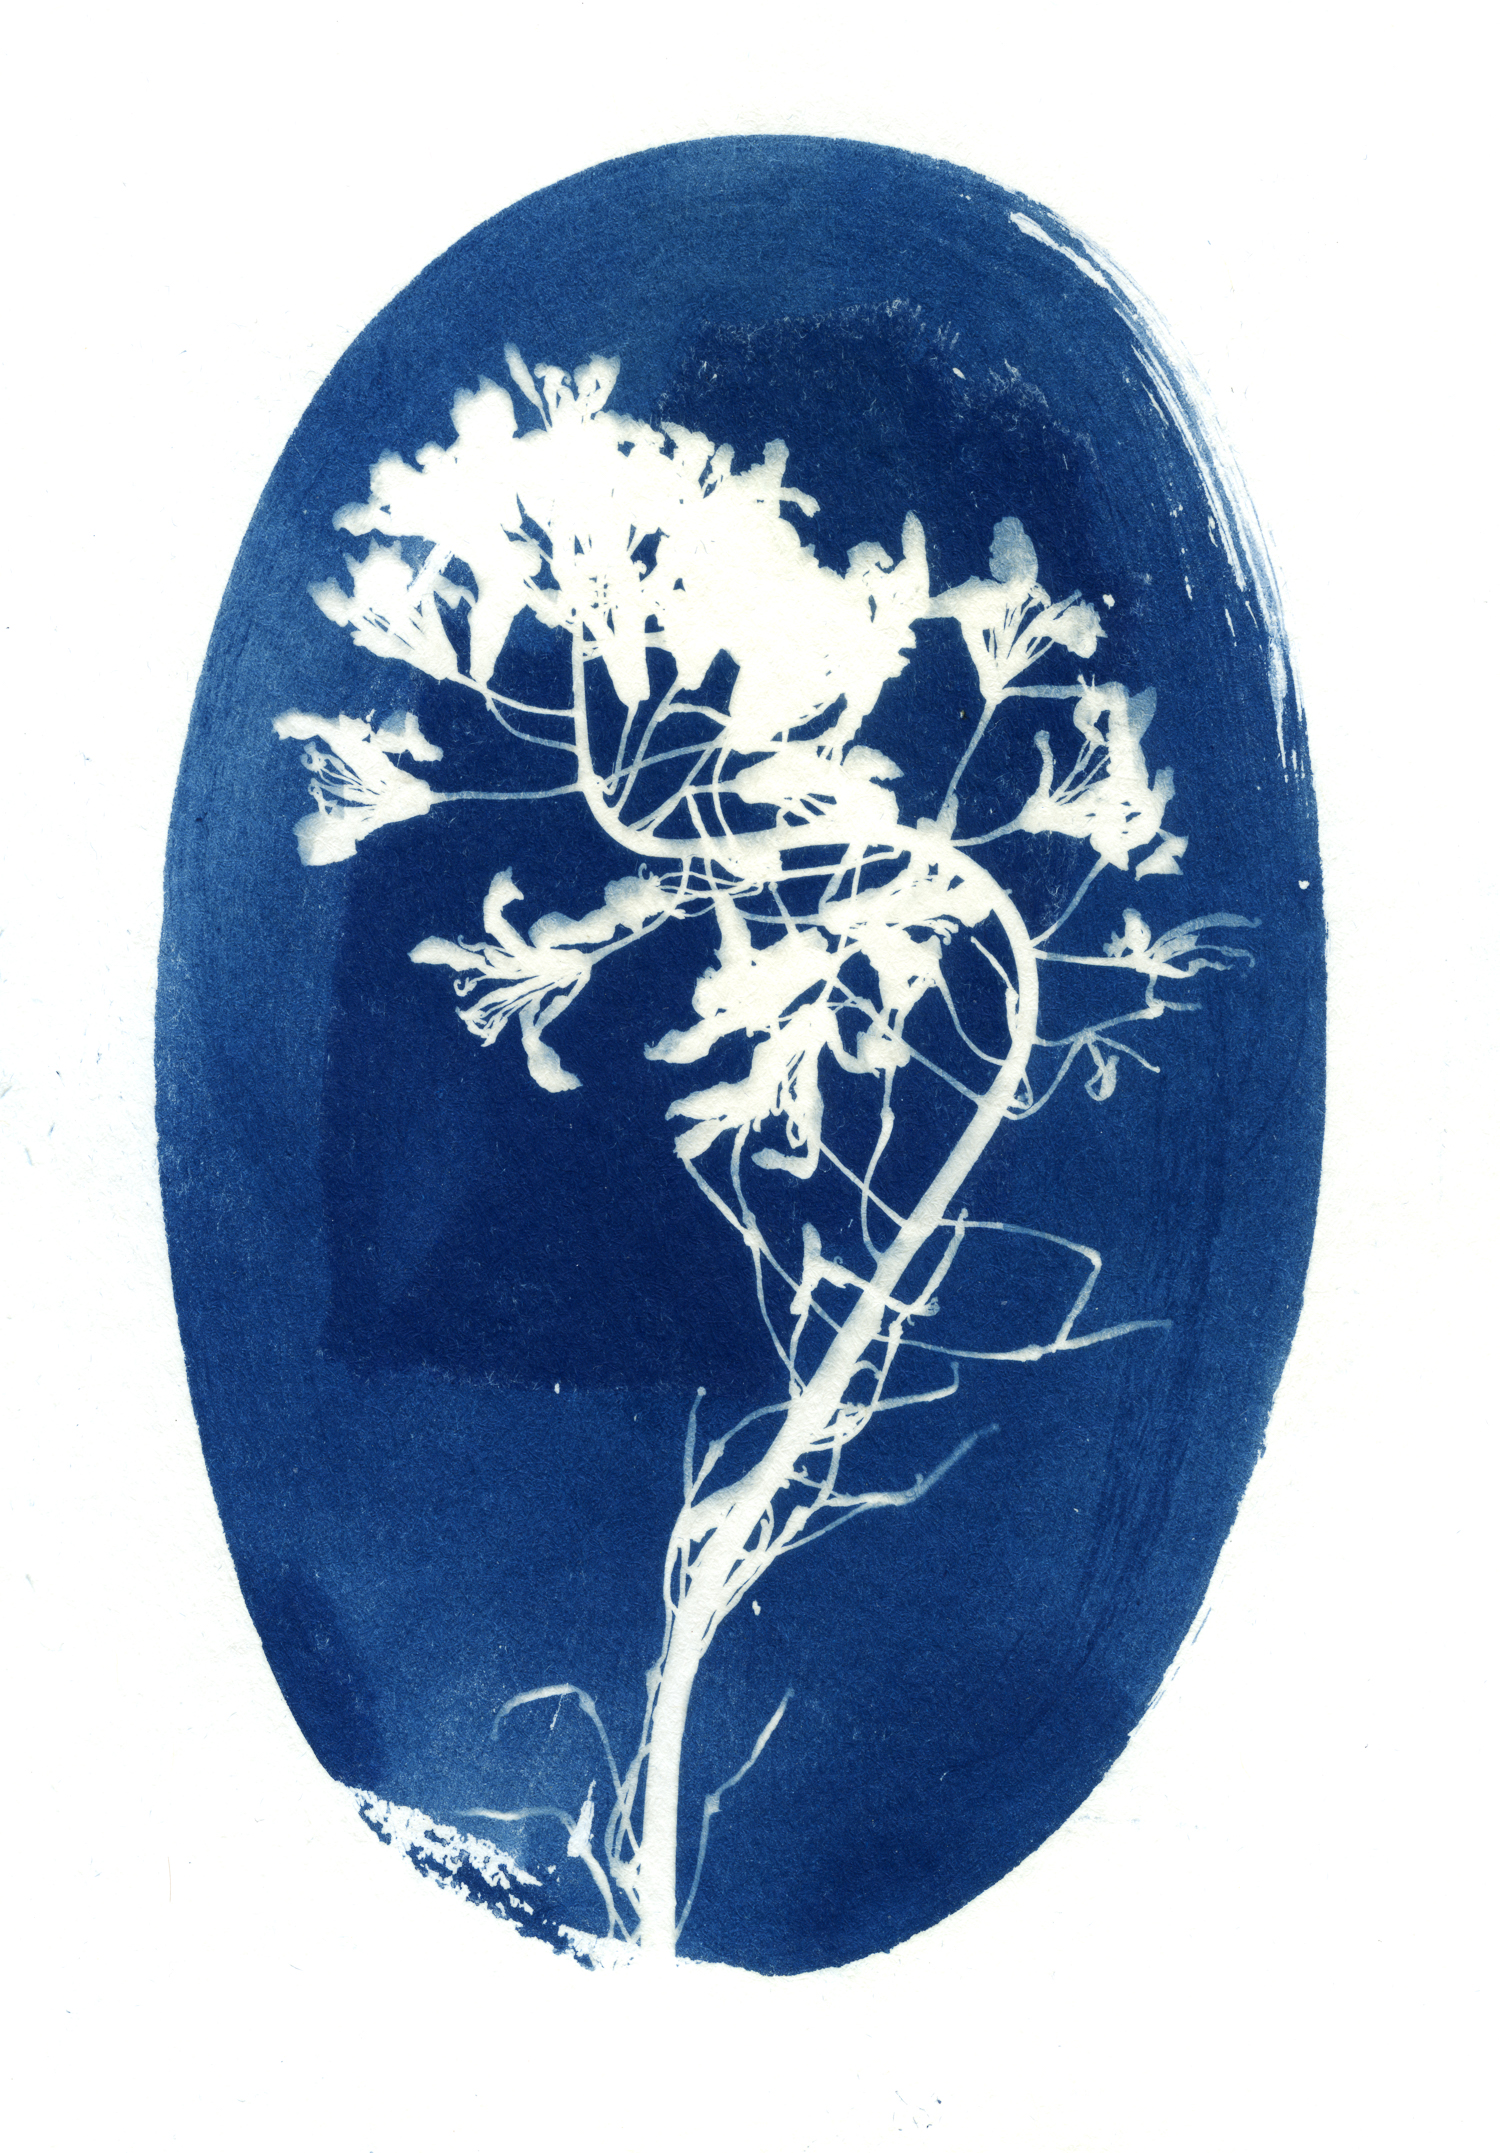 05 may 12 2019 cyanotype005.jpg